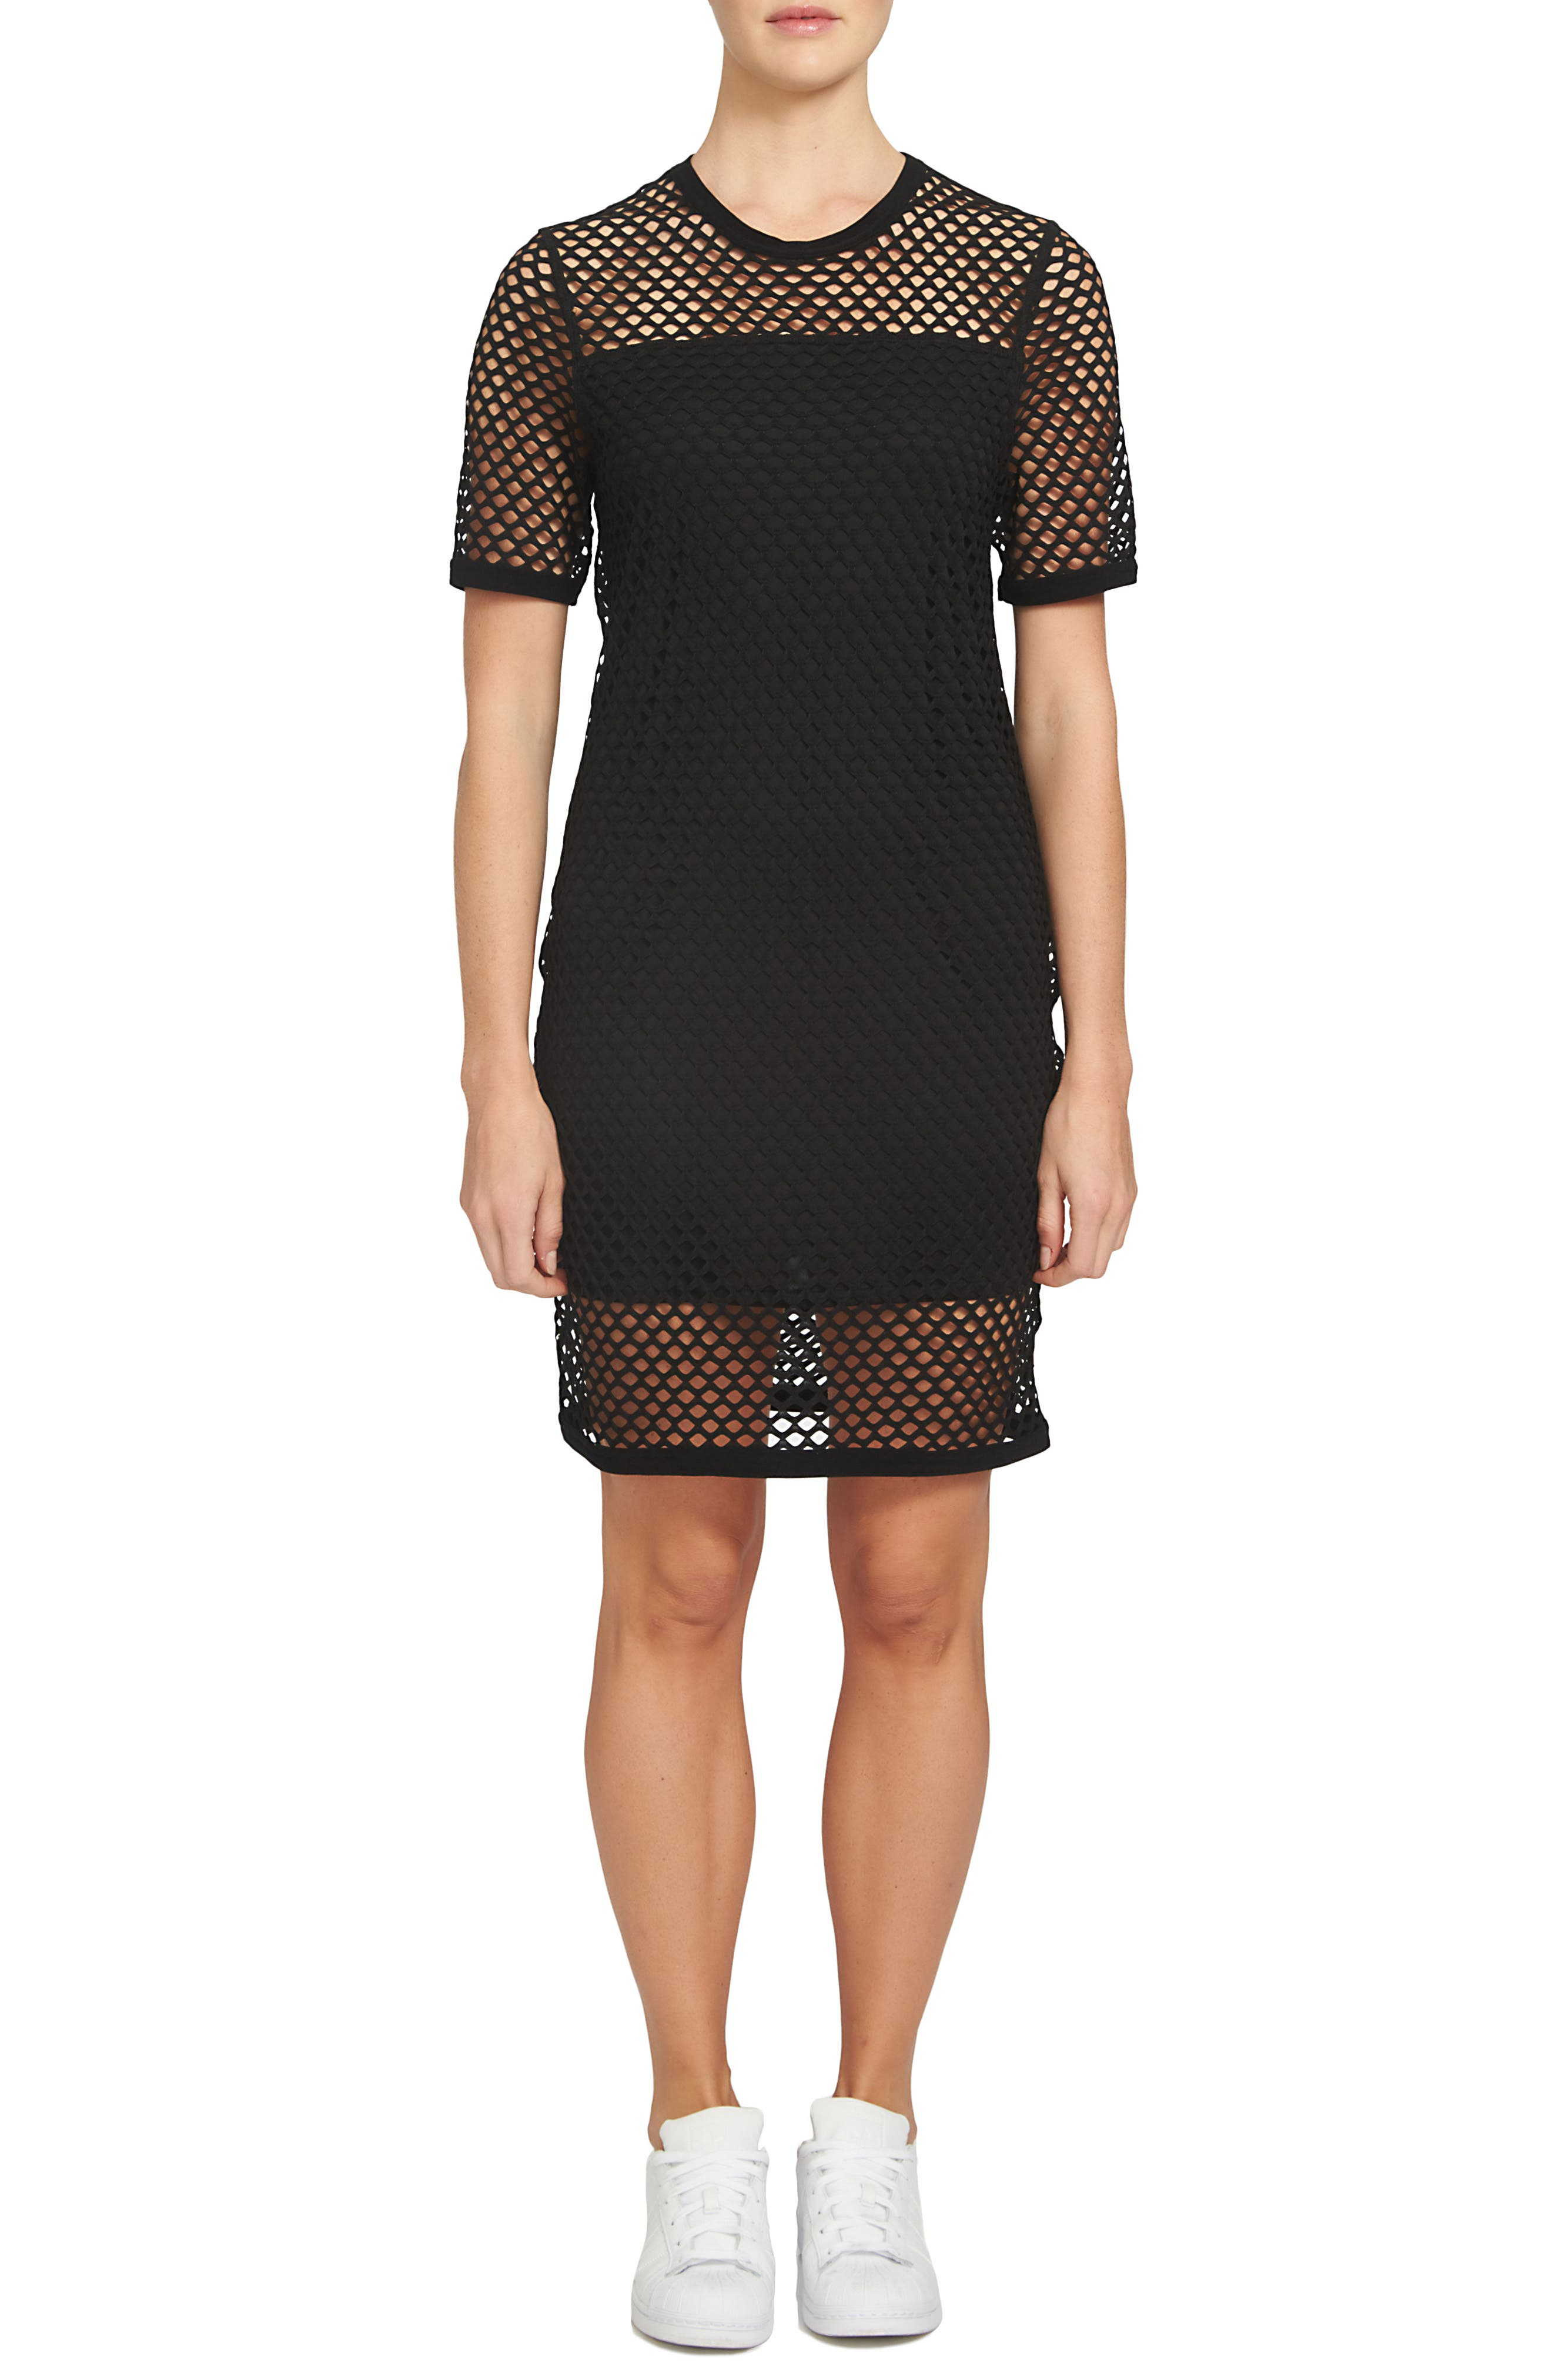 Alternate Image 1 Selected - 1.STATE Mesh T-Shirt Dress